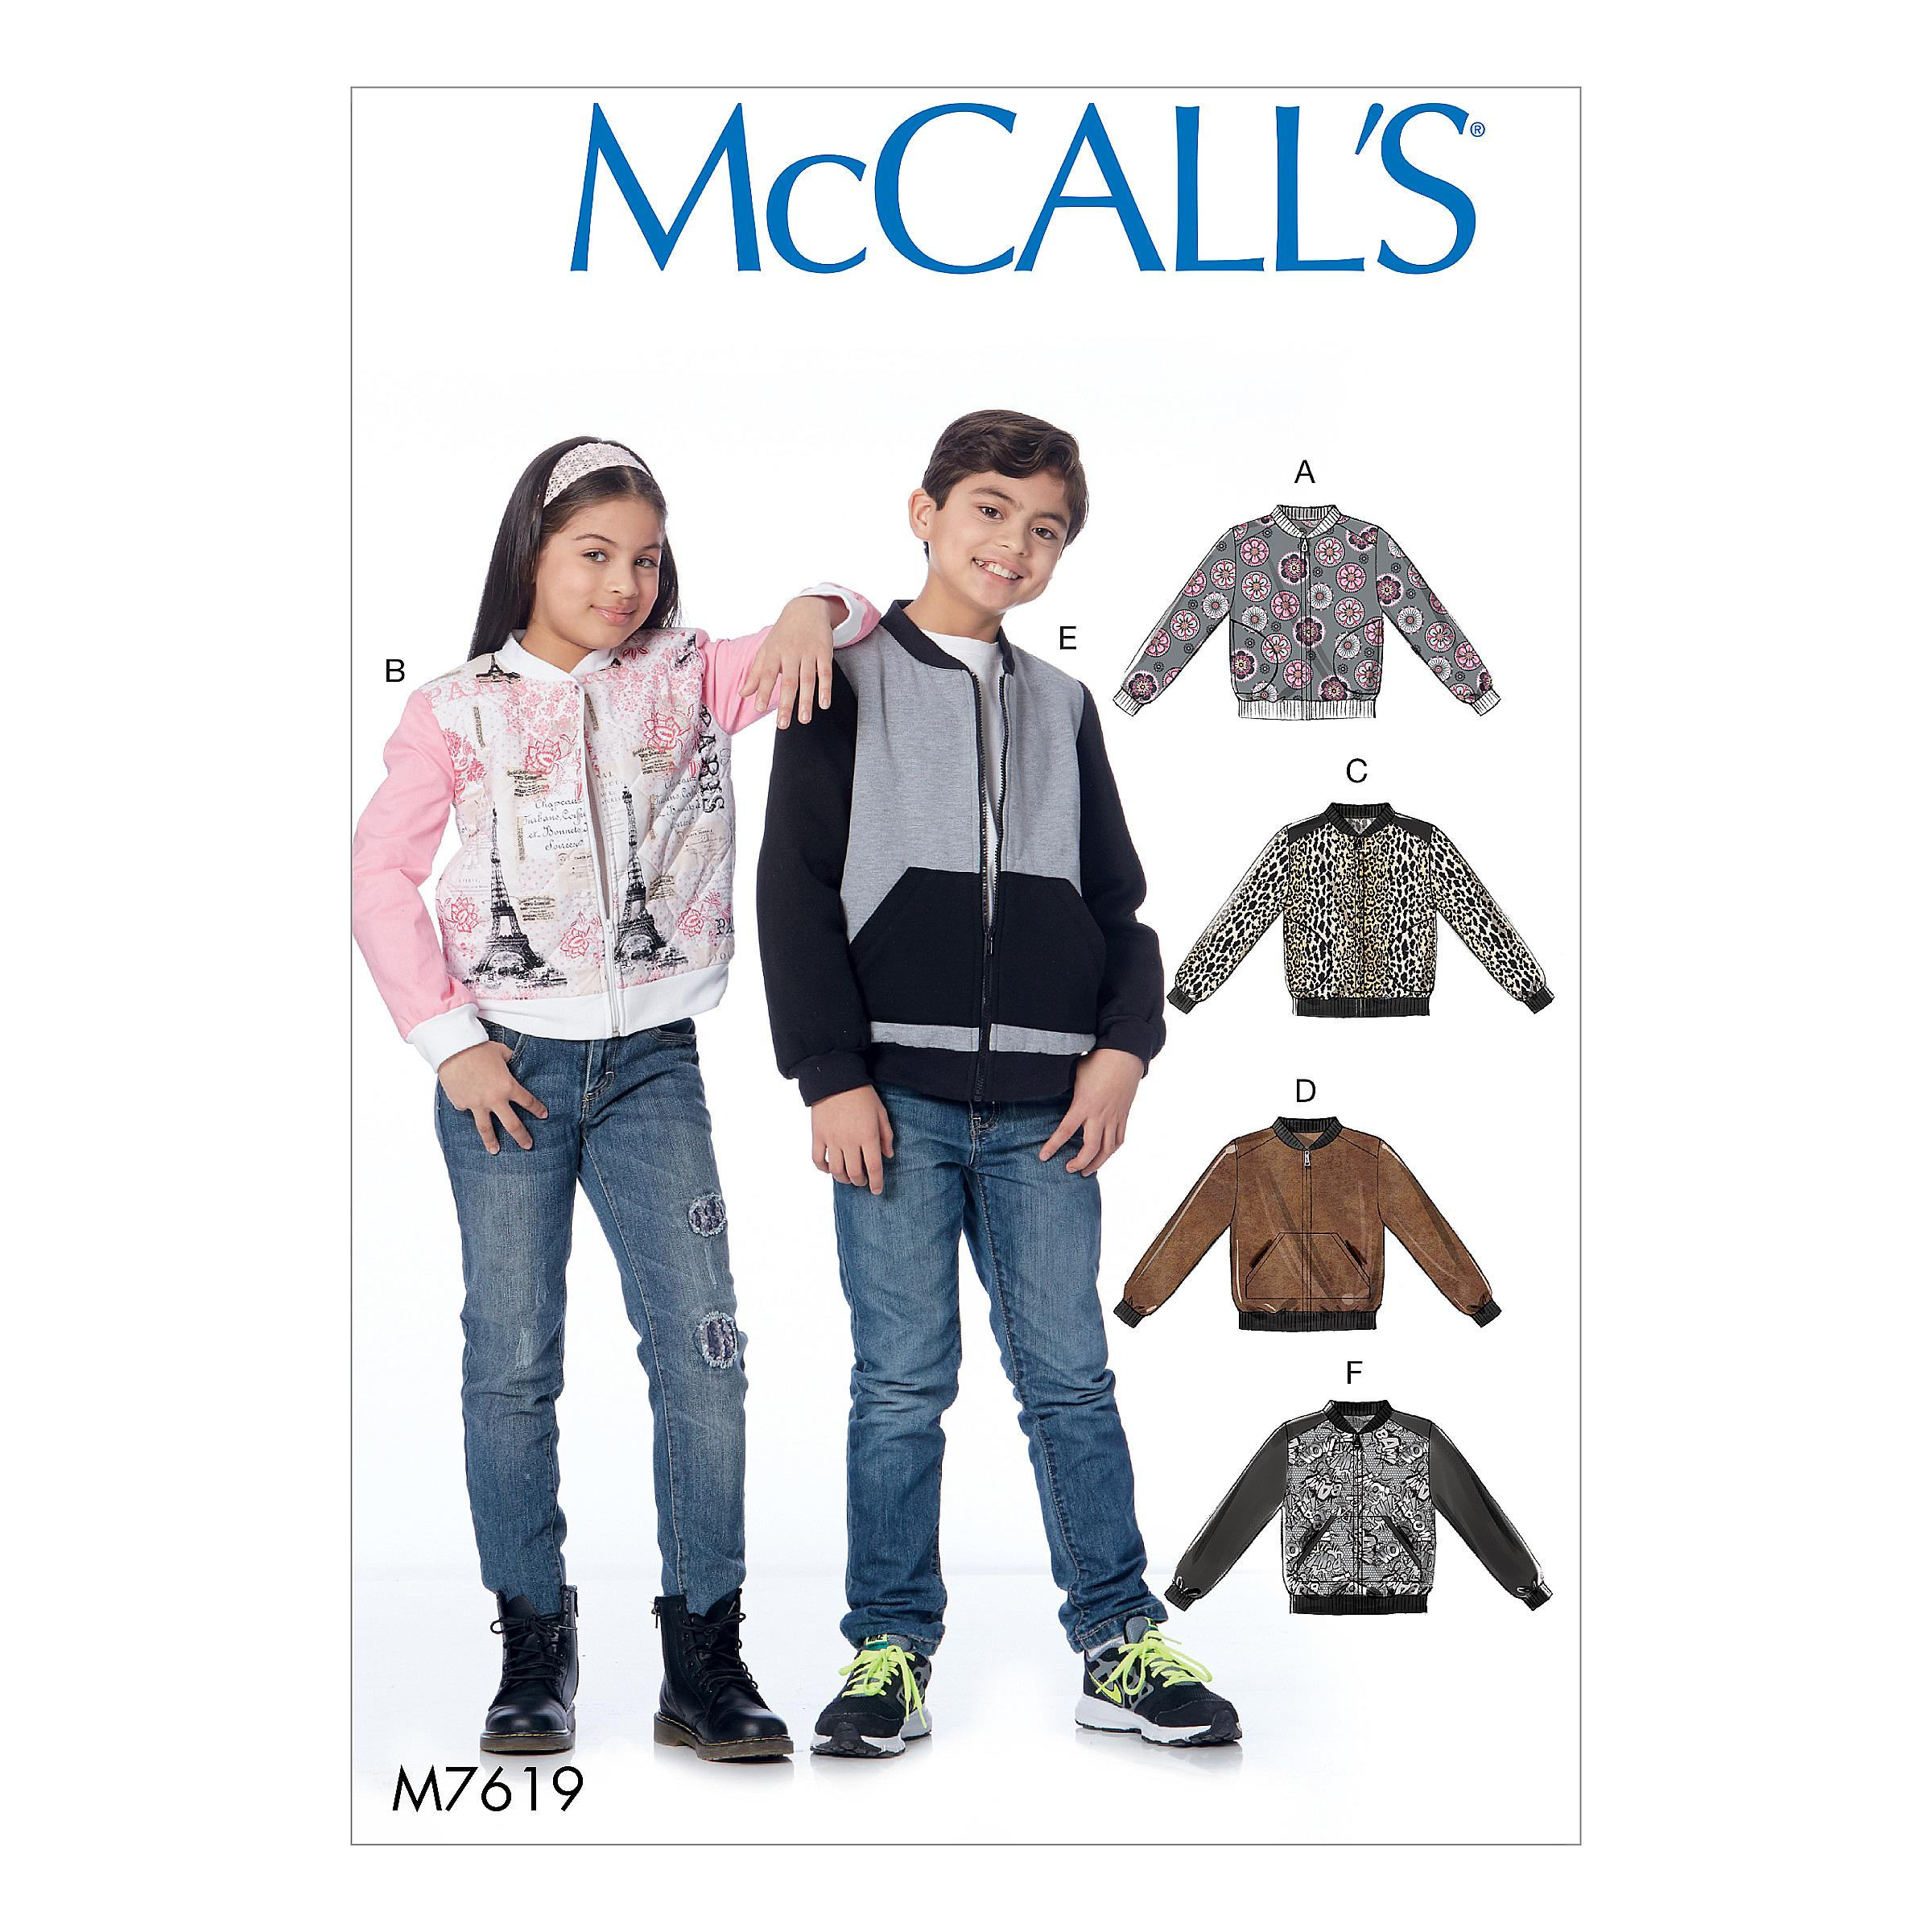 McCalls M7619 Kids Girls & Boys, Kids Children